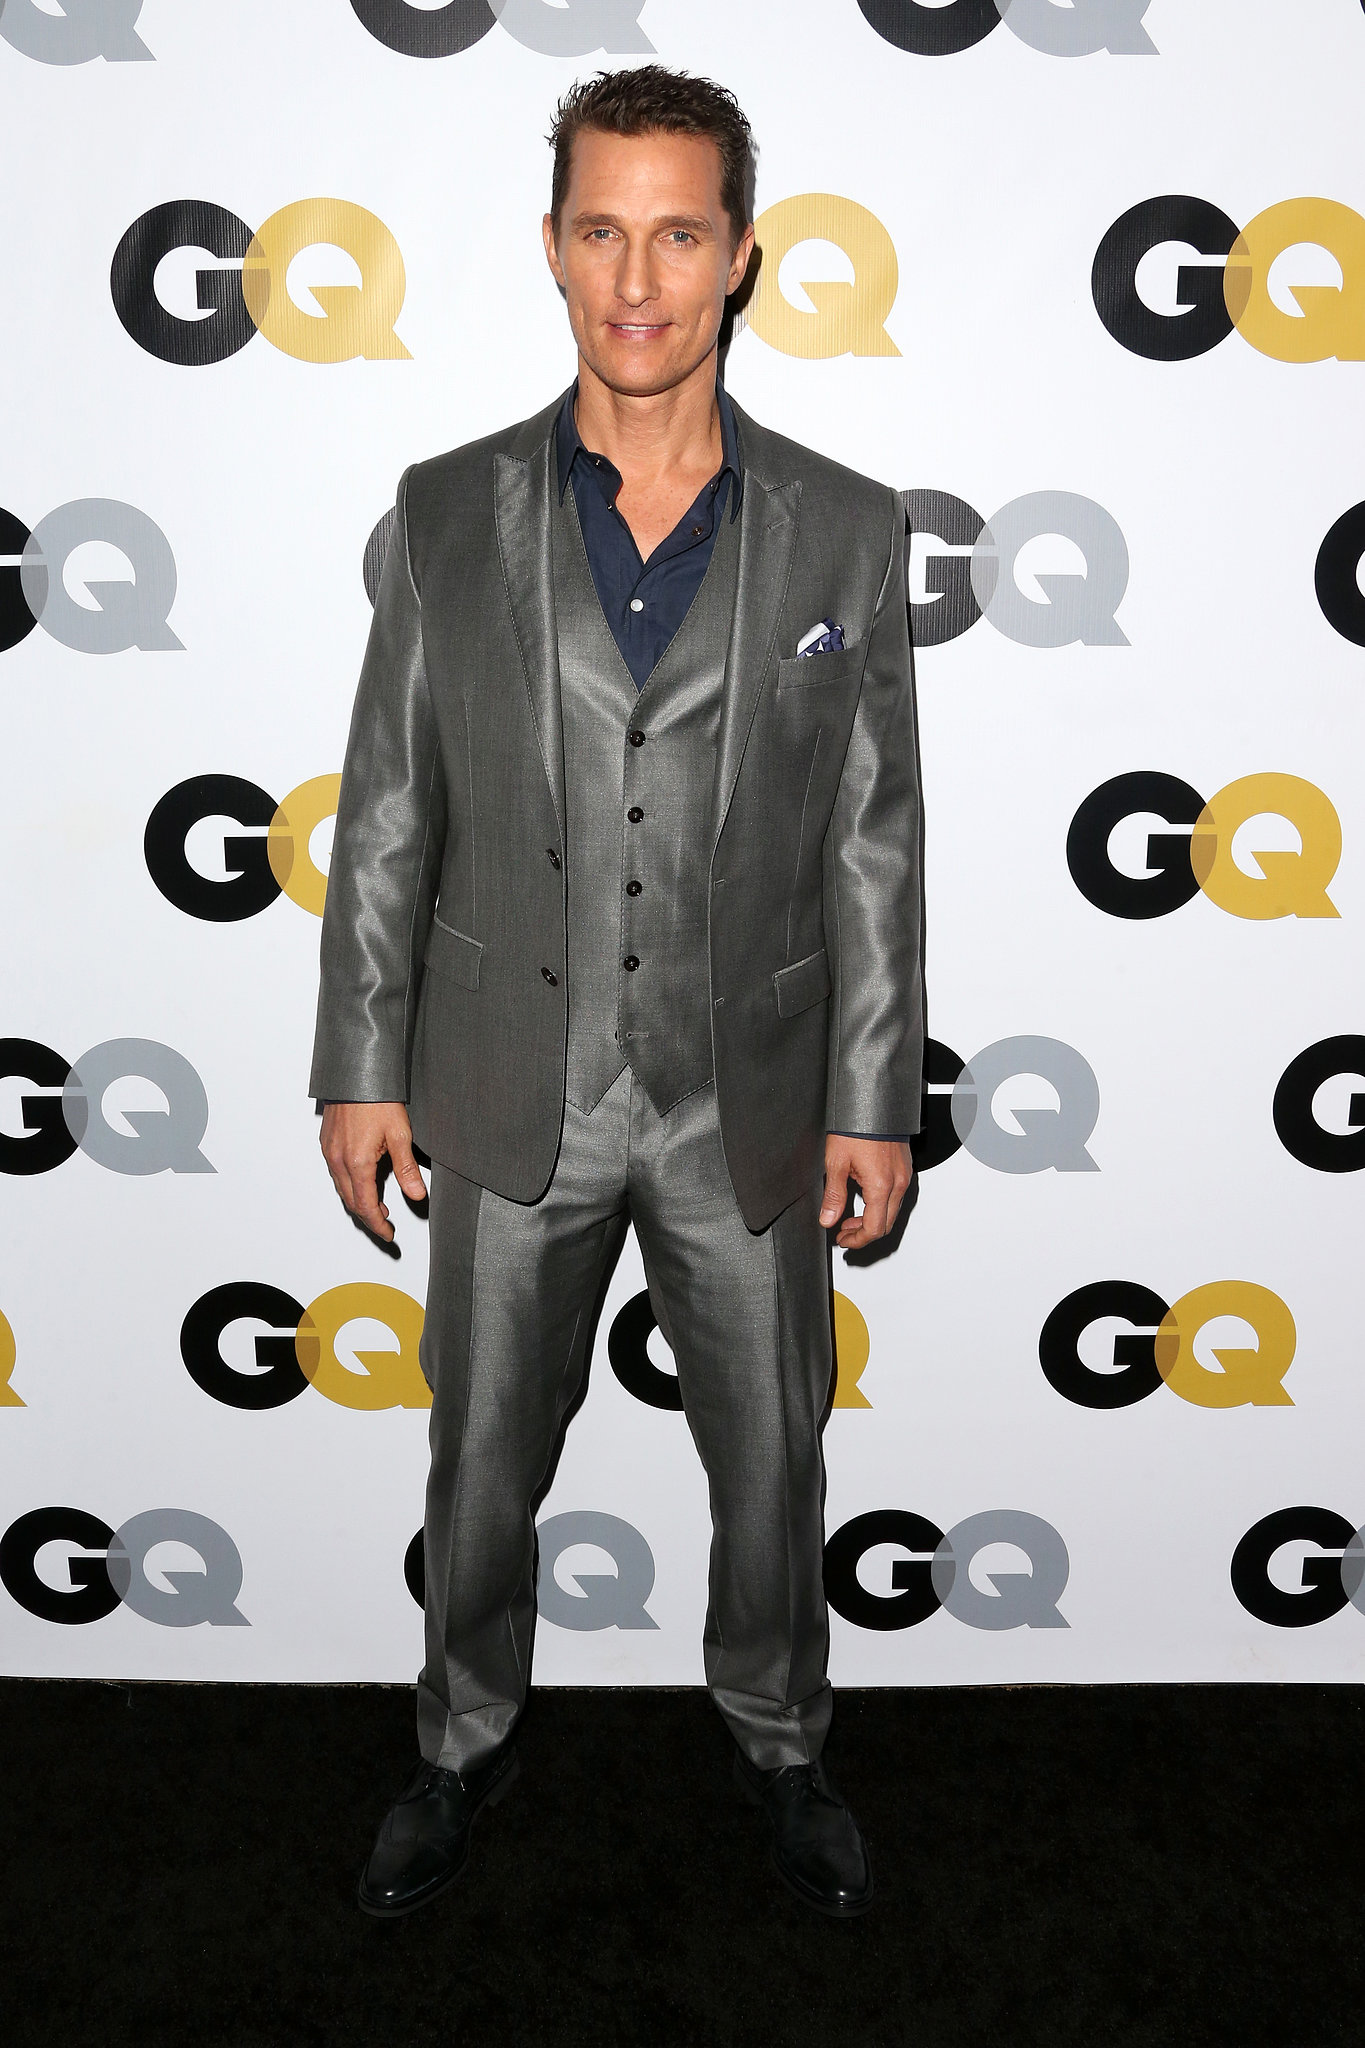 Matthew McConaughey attended the GQ Men of the Year party in LA.